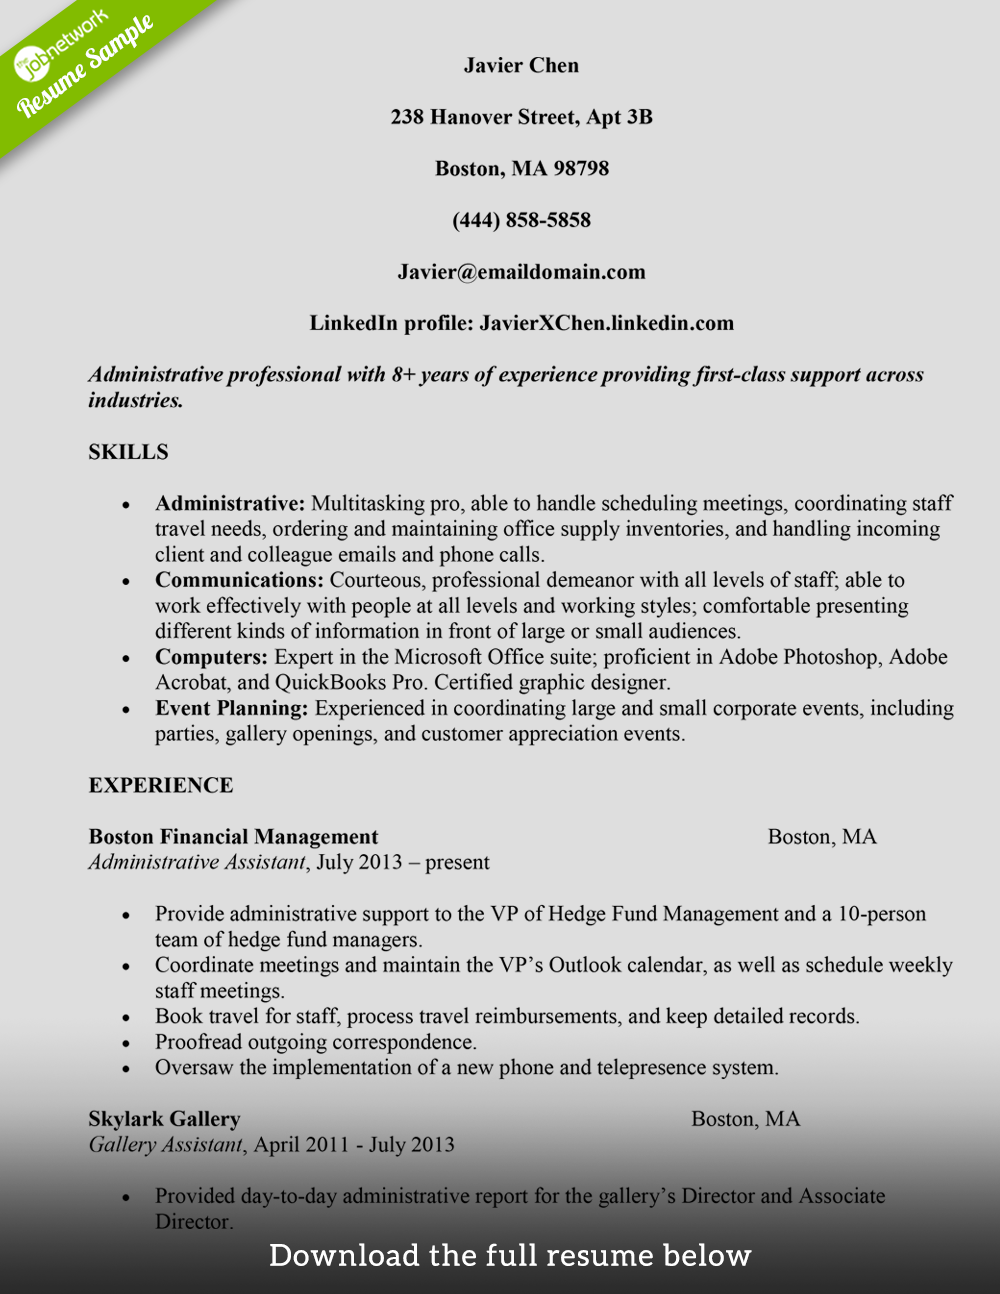 administrative assistant resume javier chen - Office Assistant Resume Sample